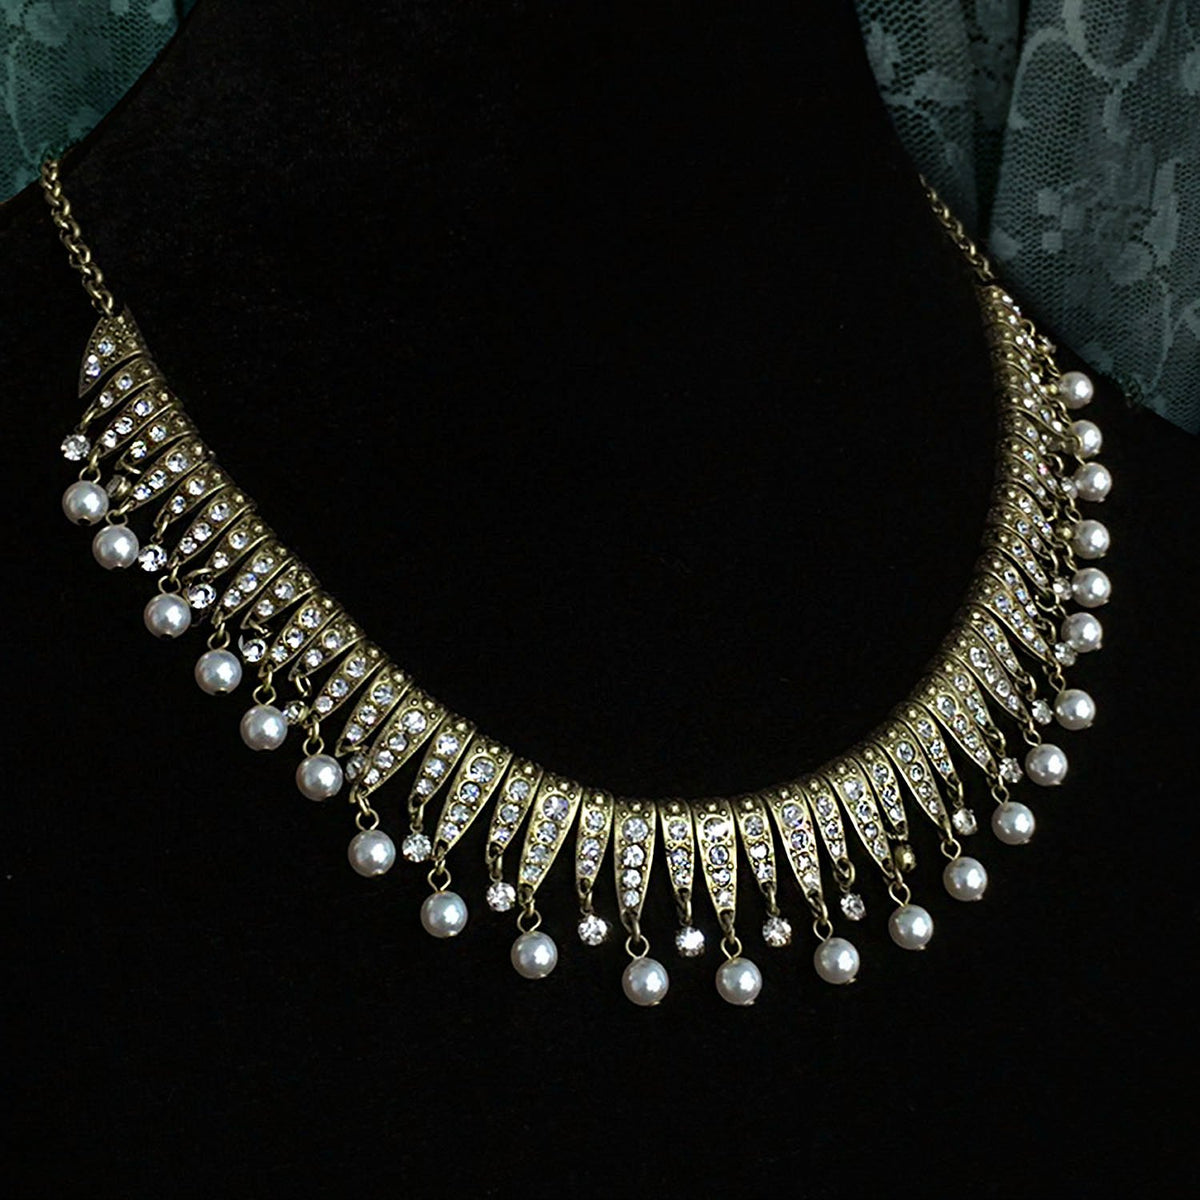 Vintage Art Deco Statement Necklace & Earrings Set